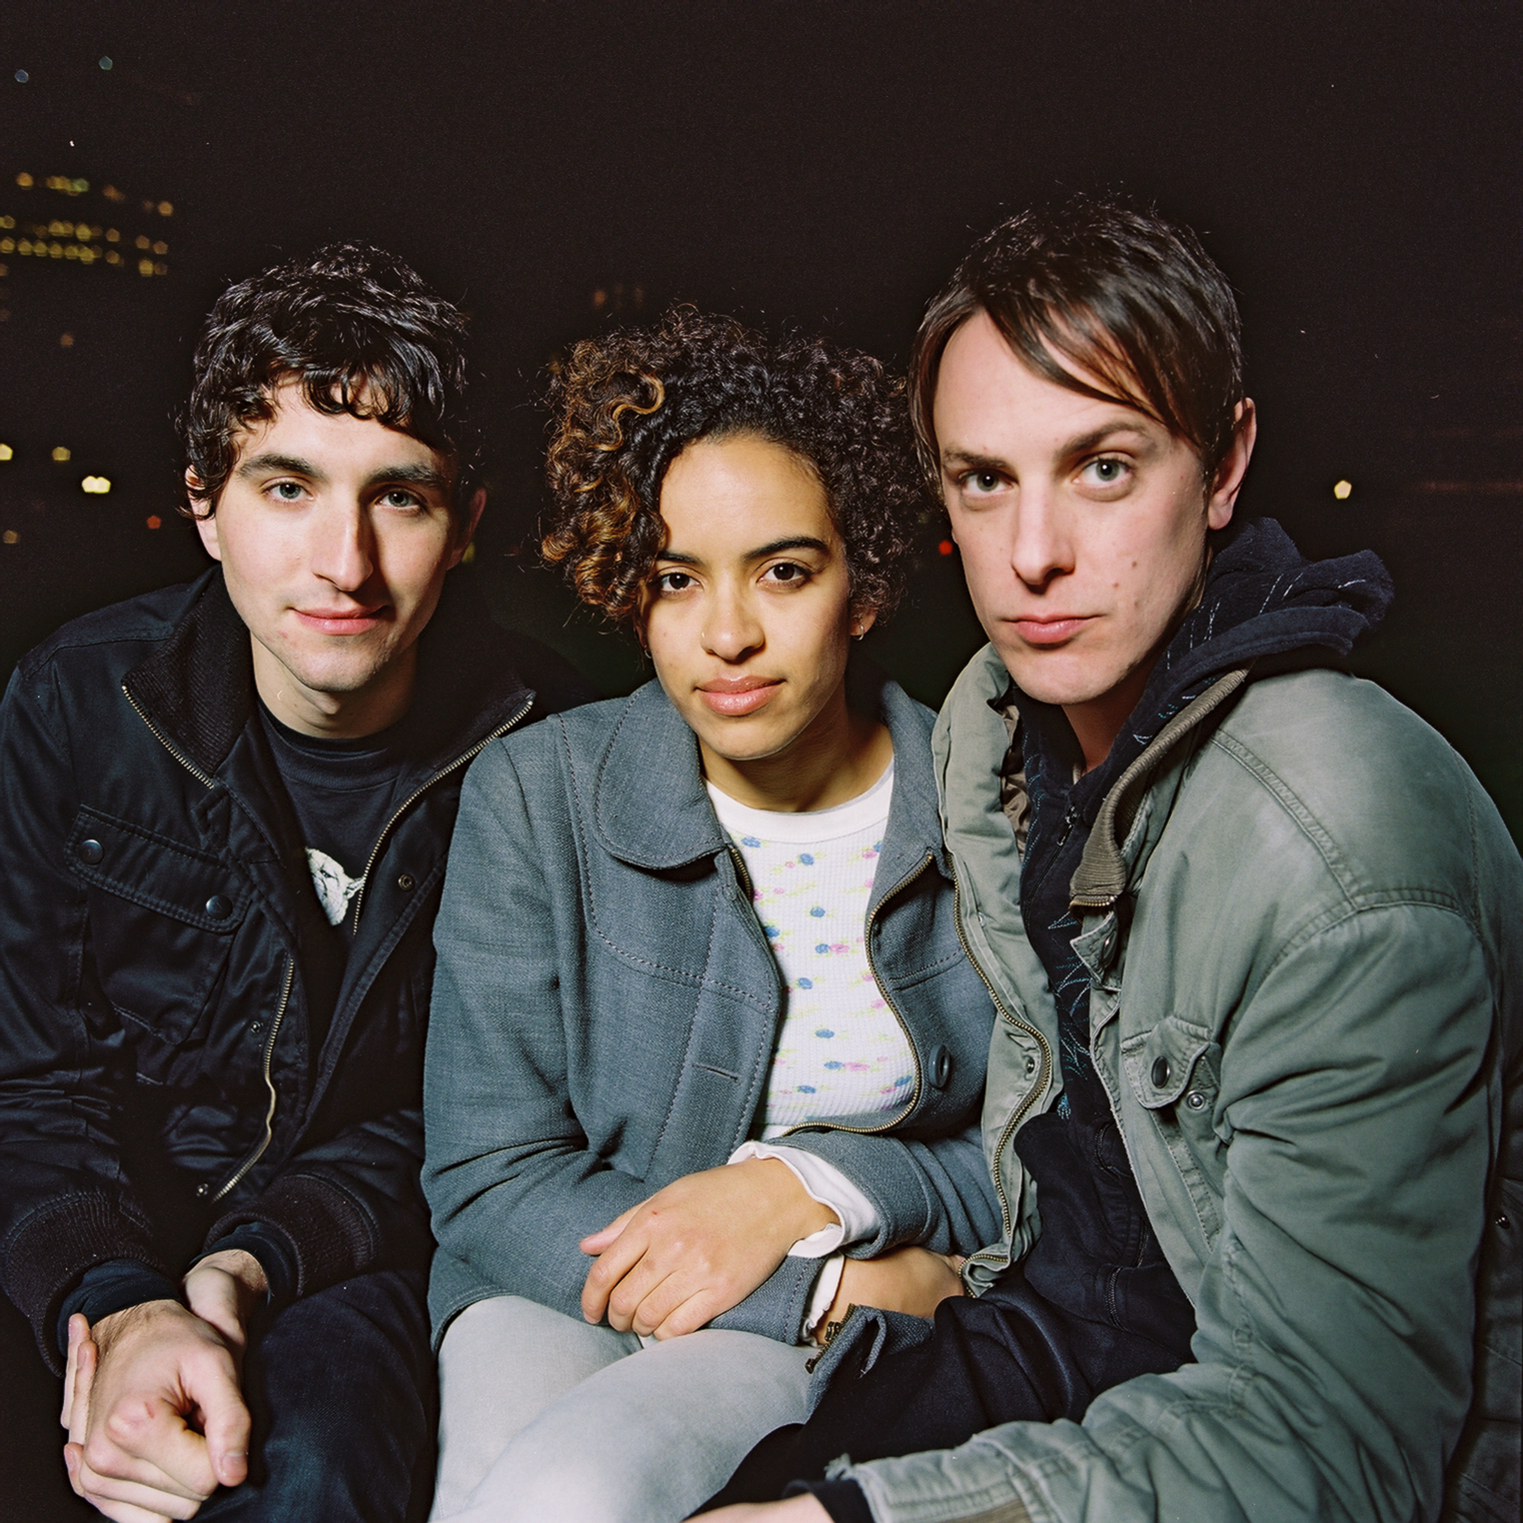 The Thermals - Wikipedia